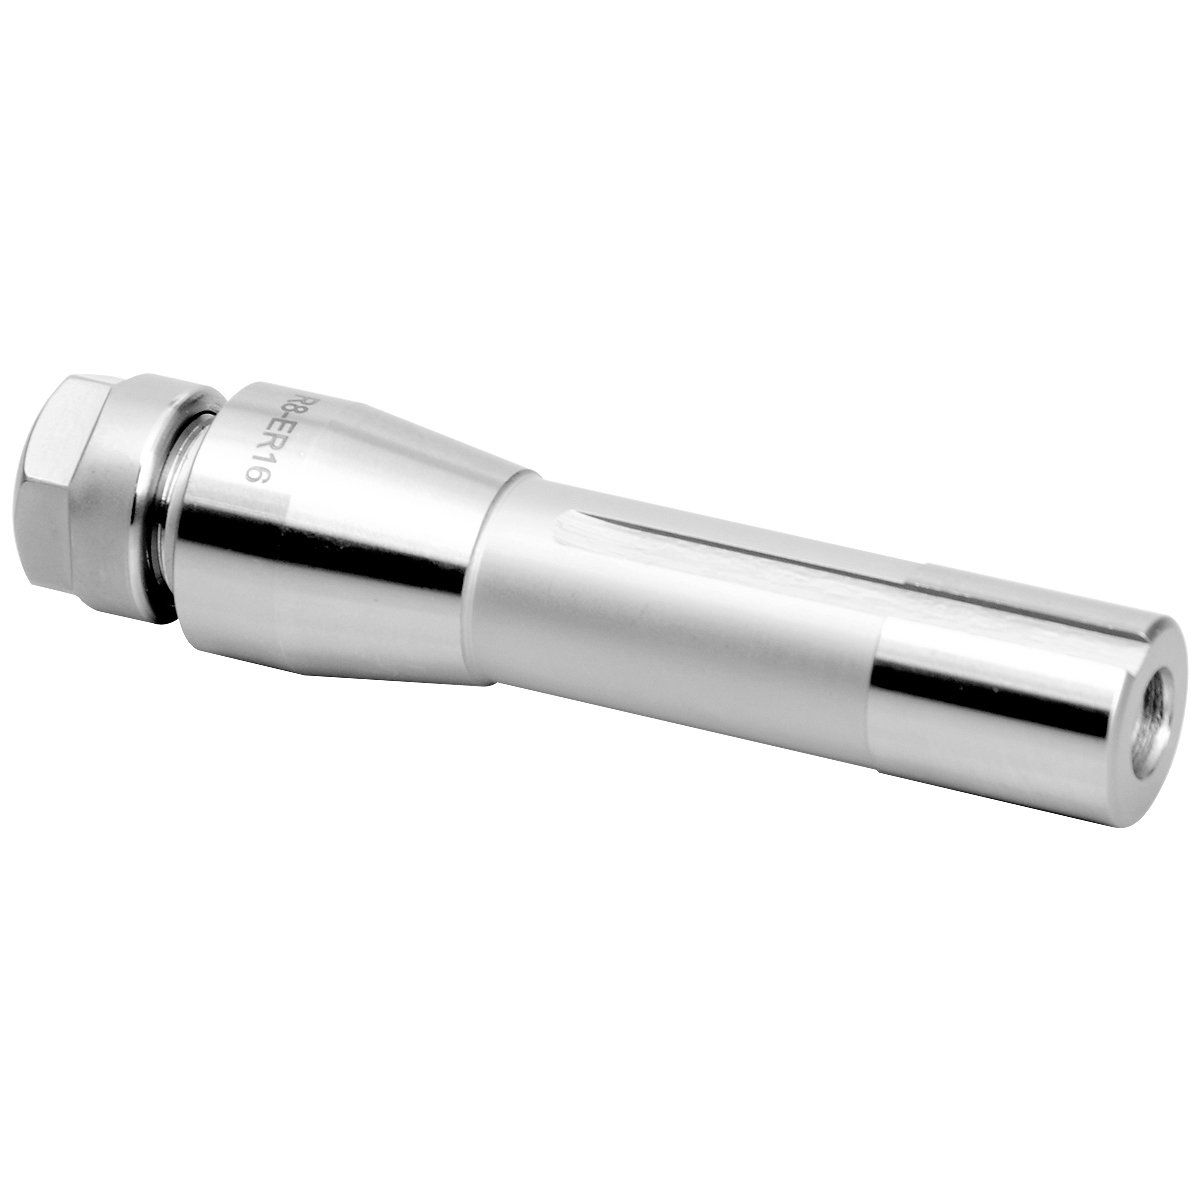 Pro Series by HHIP 3901-5063 R8 ER-20 Collet Chuck Drawbar End Collet Chuck with Hex Nut by HHIP